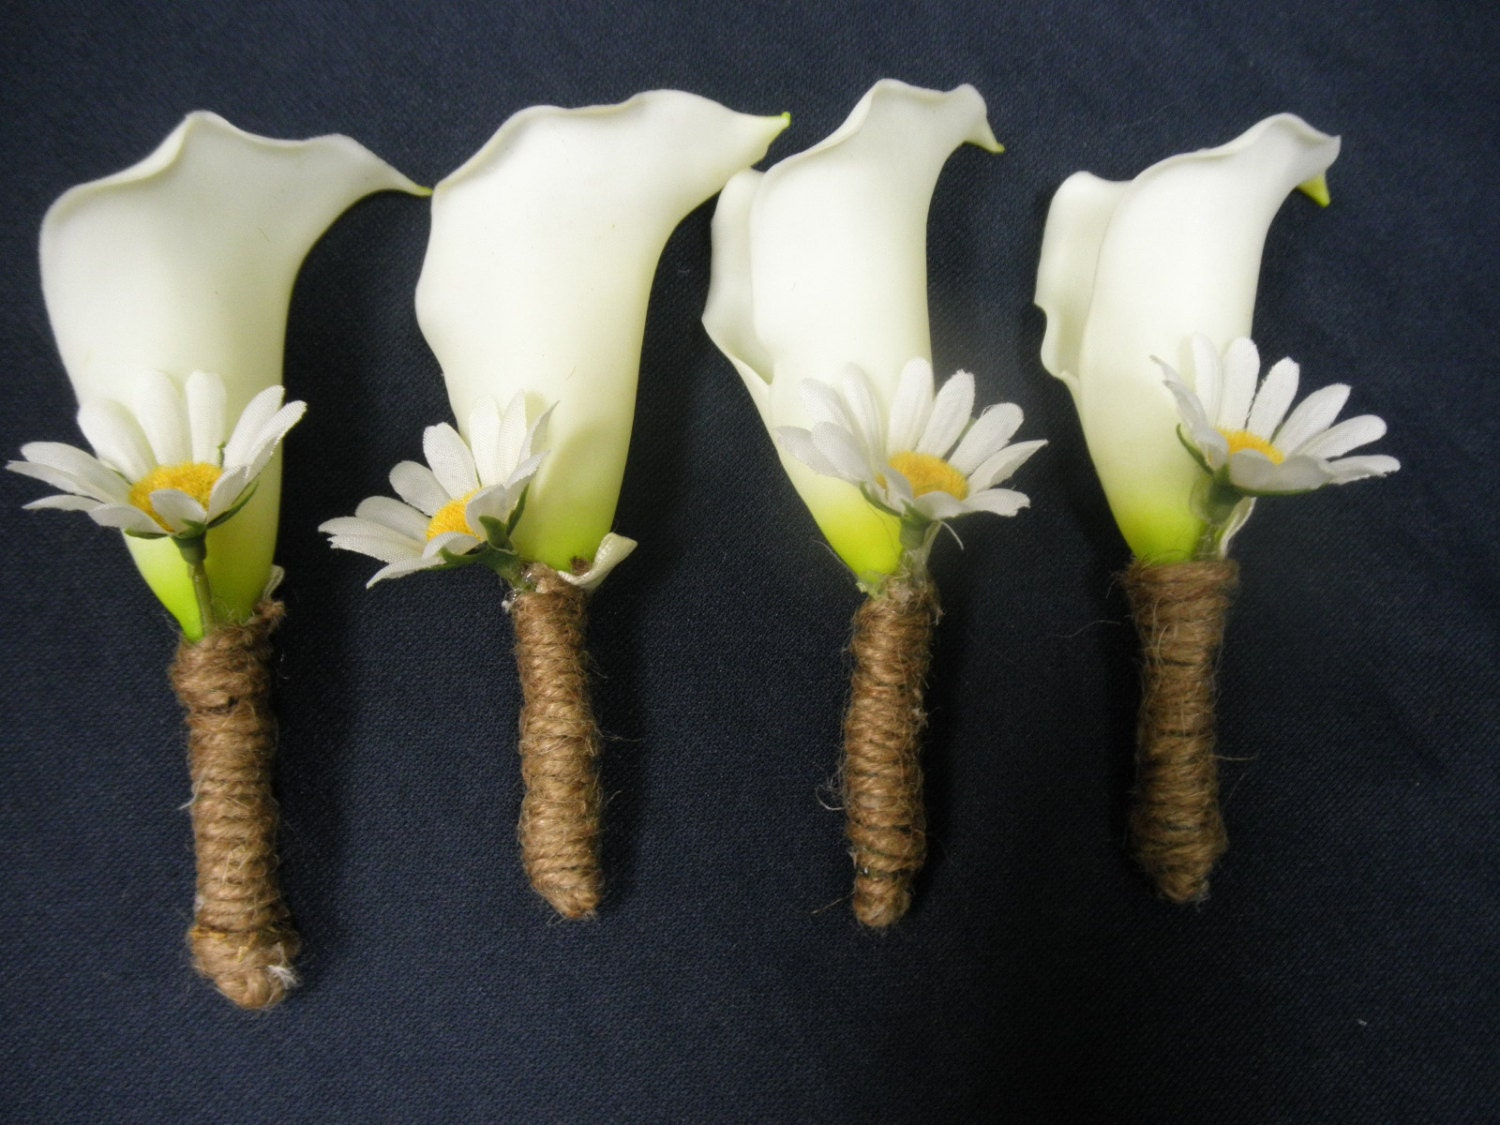 4 Pc Set GROOM BOUTONNIERE. White CALLA Lily And Daisy. Burlap